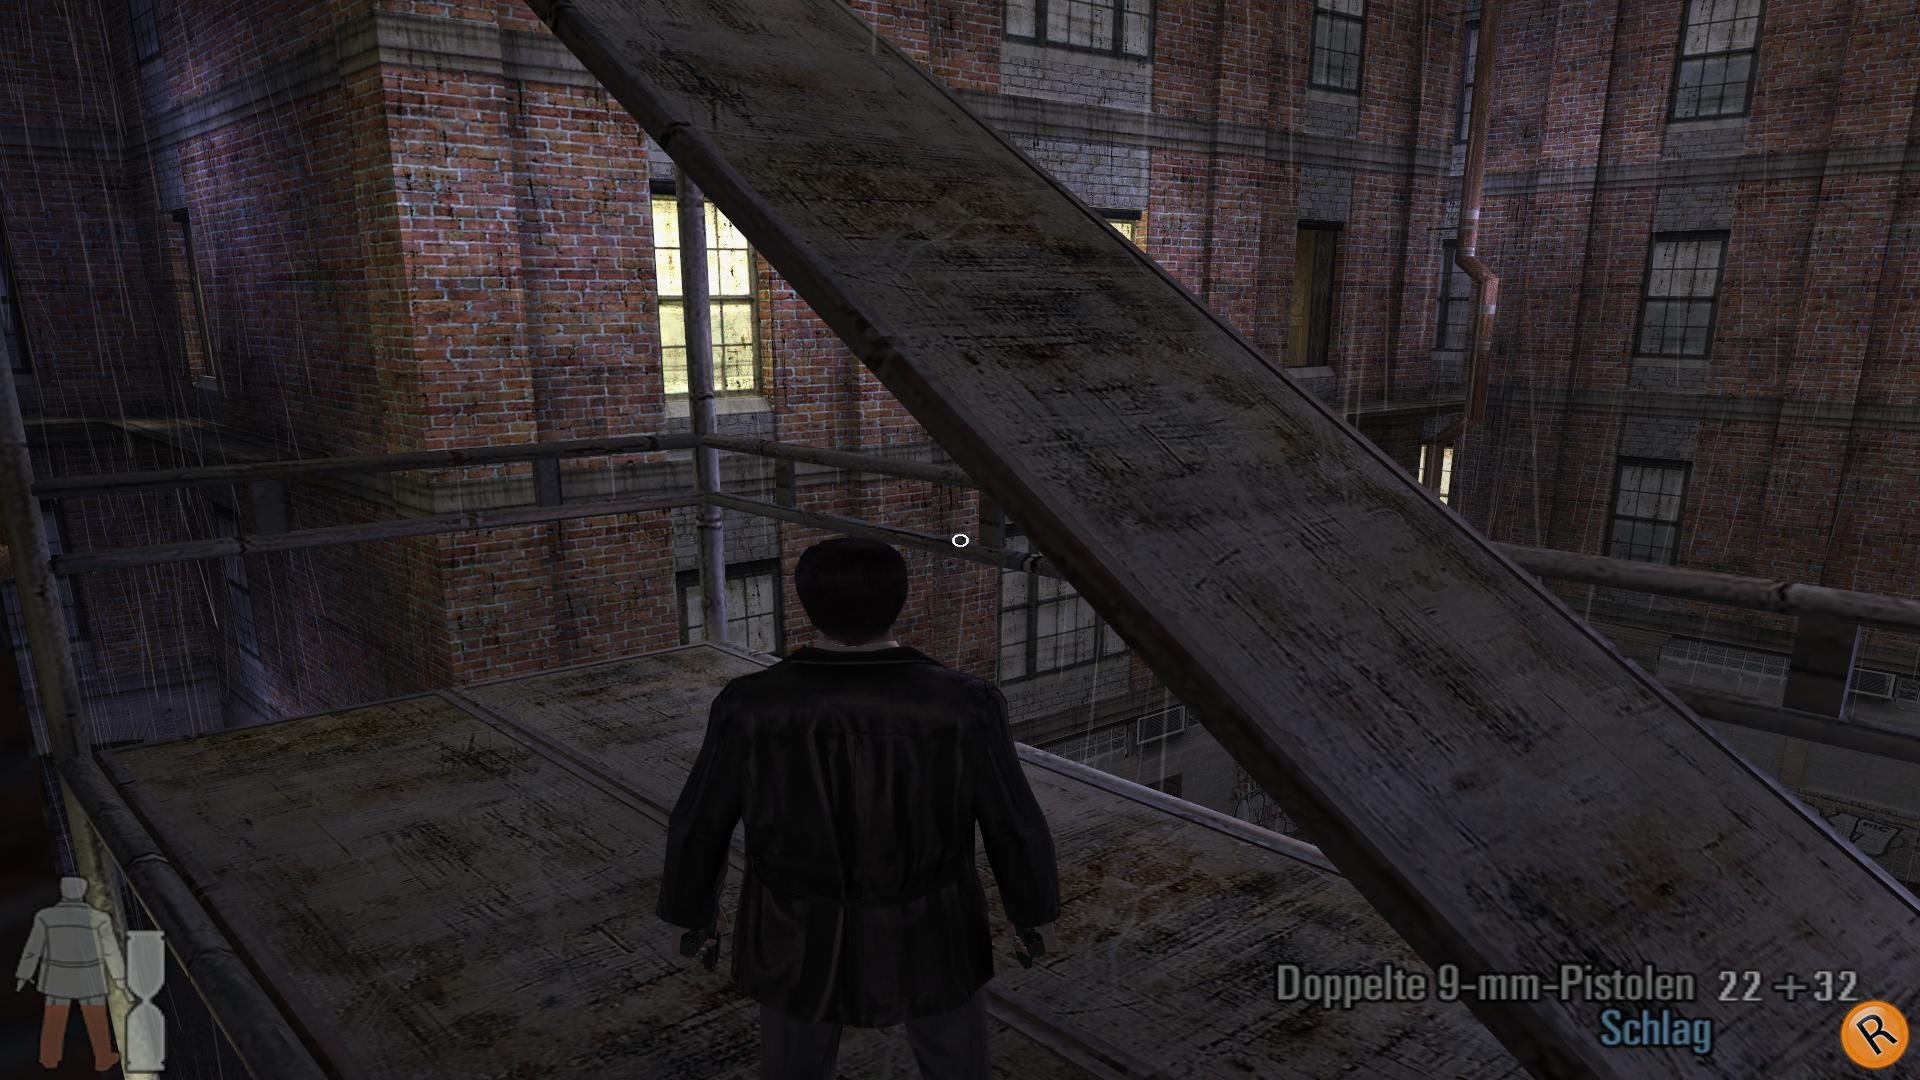 Max payne 1 win 7 patch